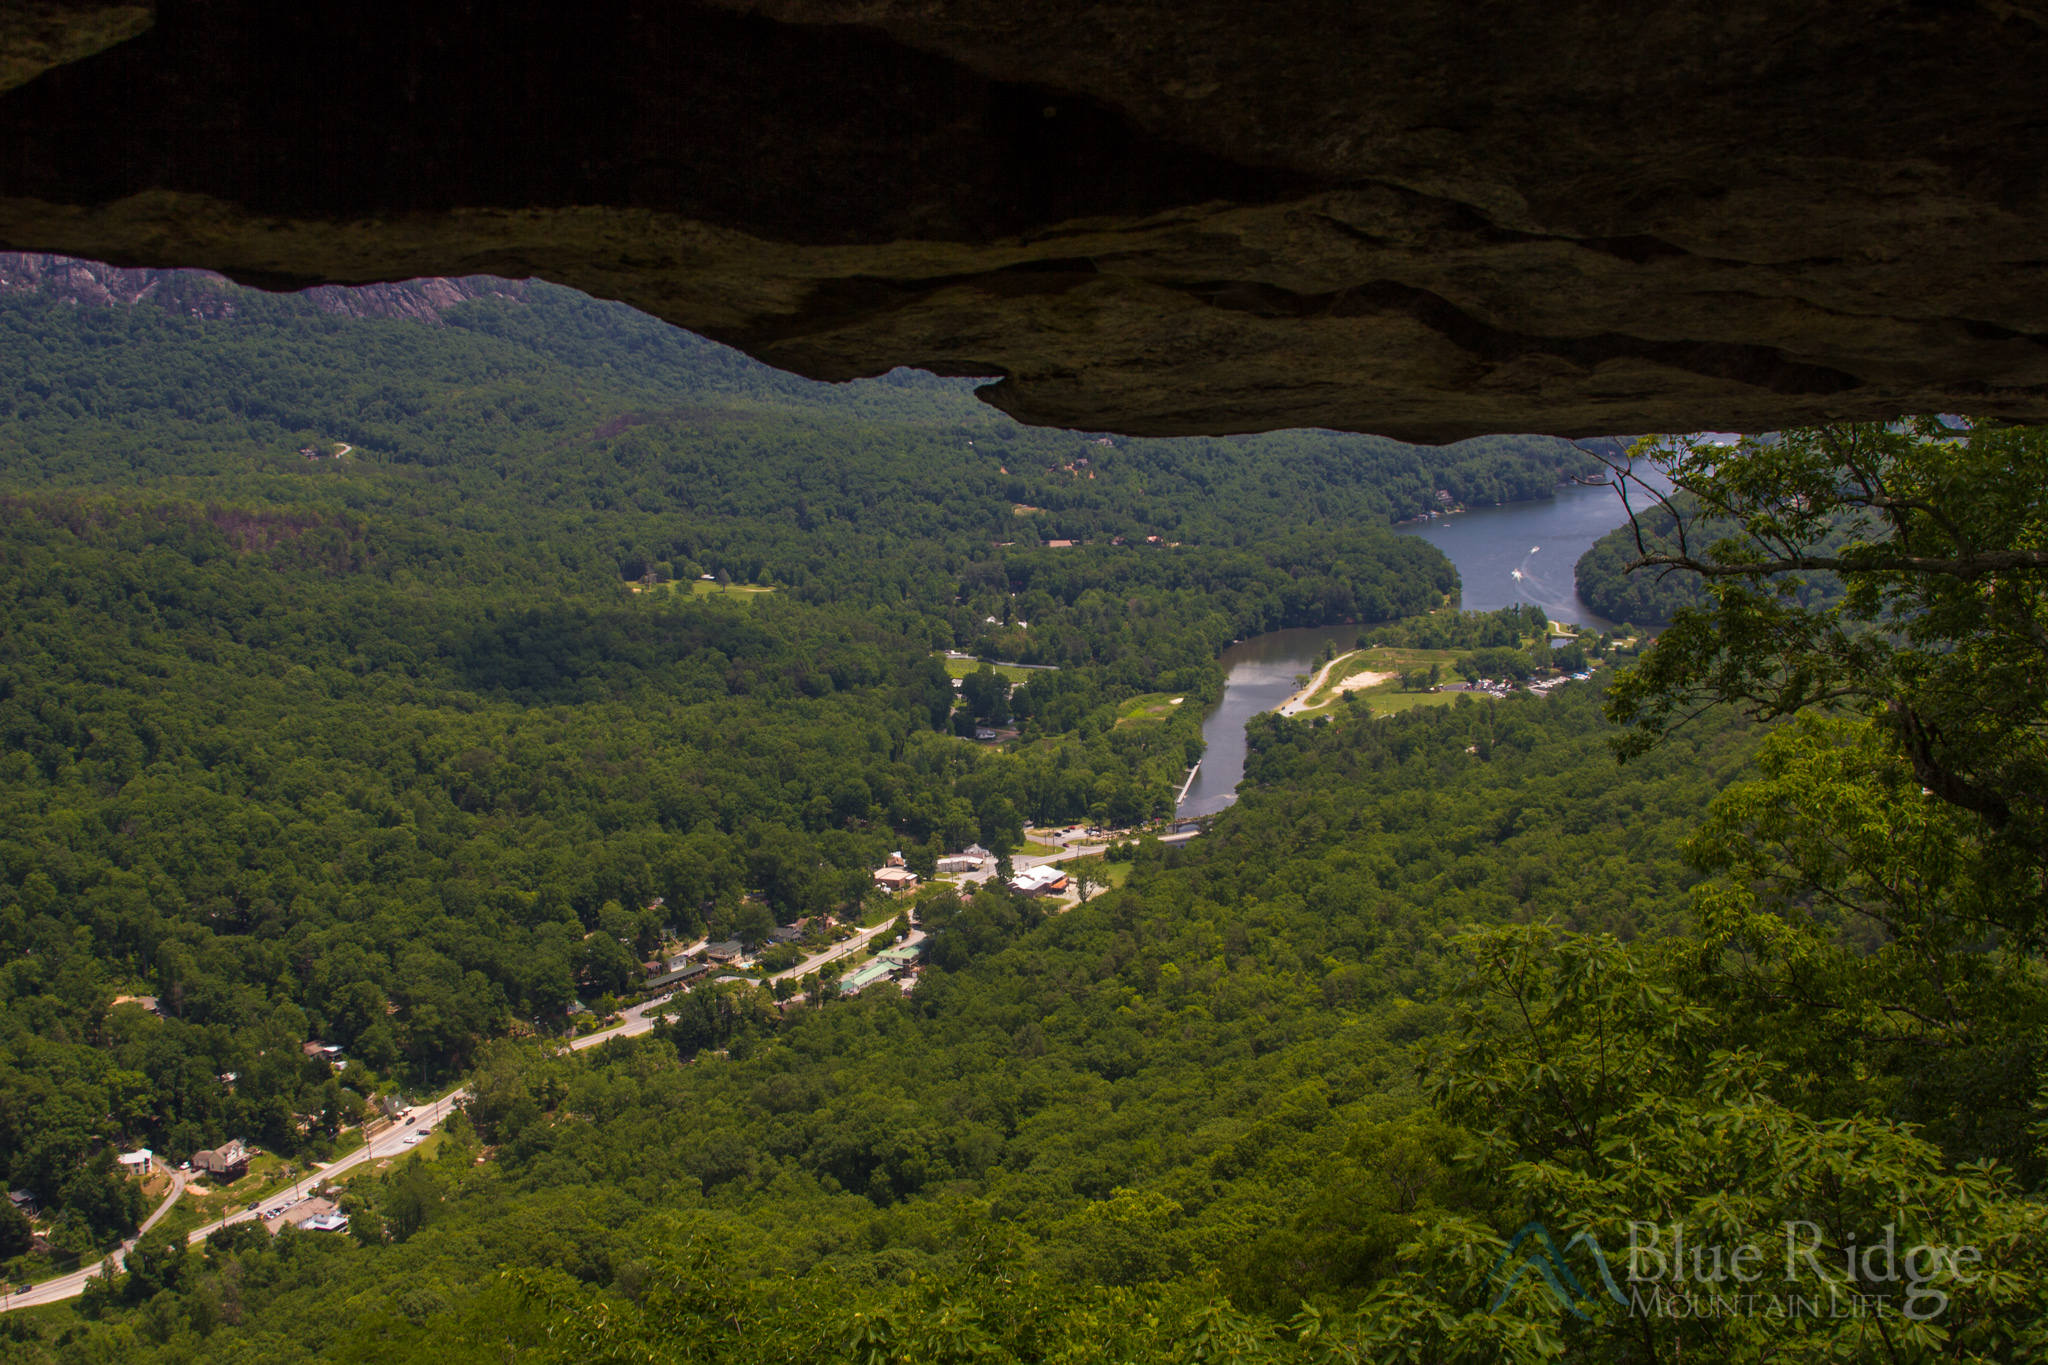 View from the Grotto at Chimney Rock State Park